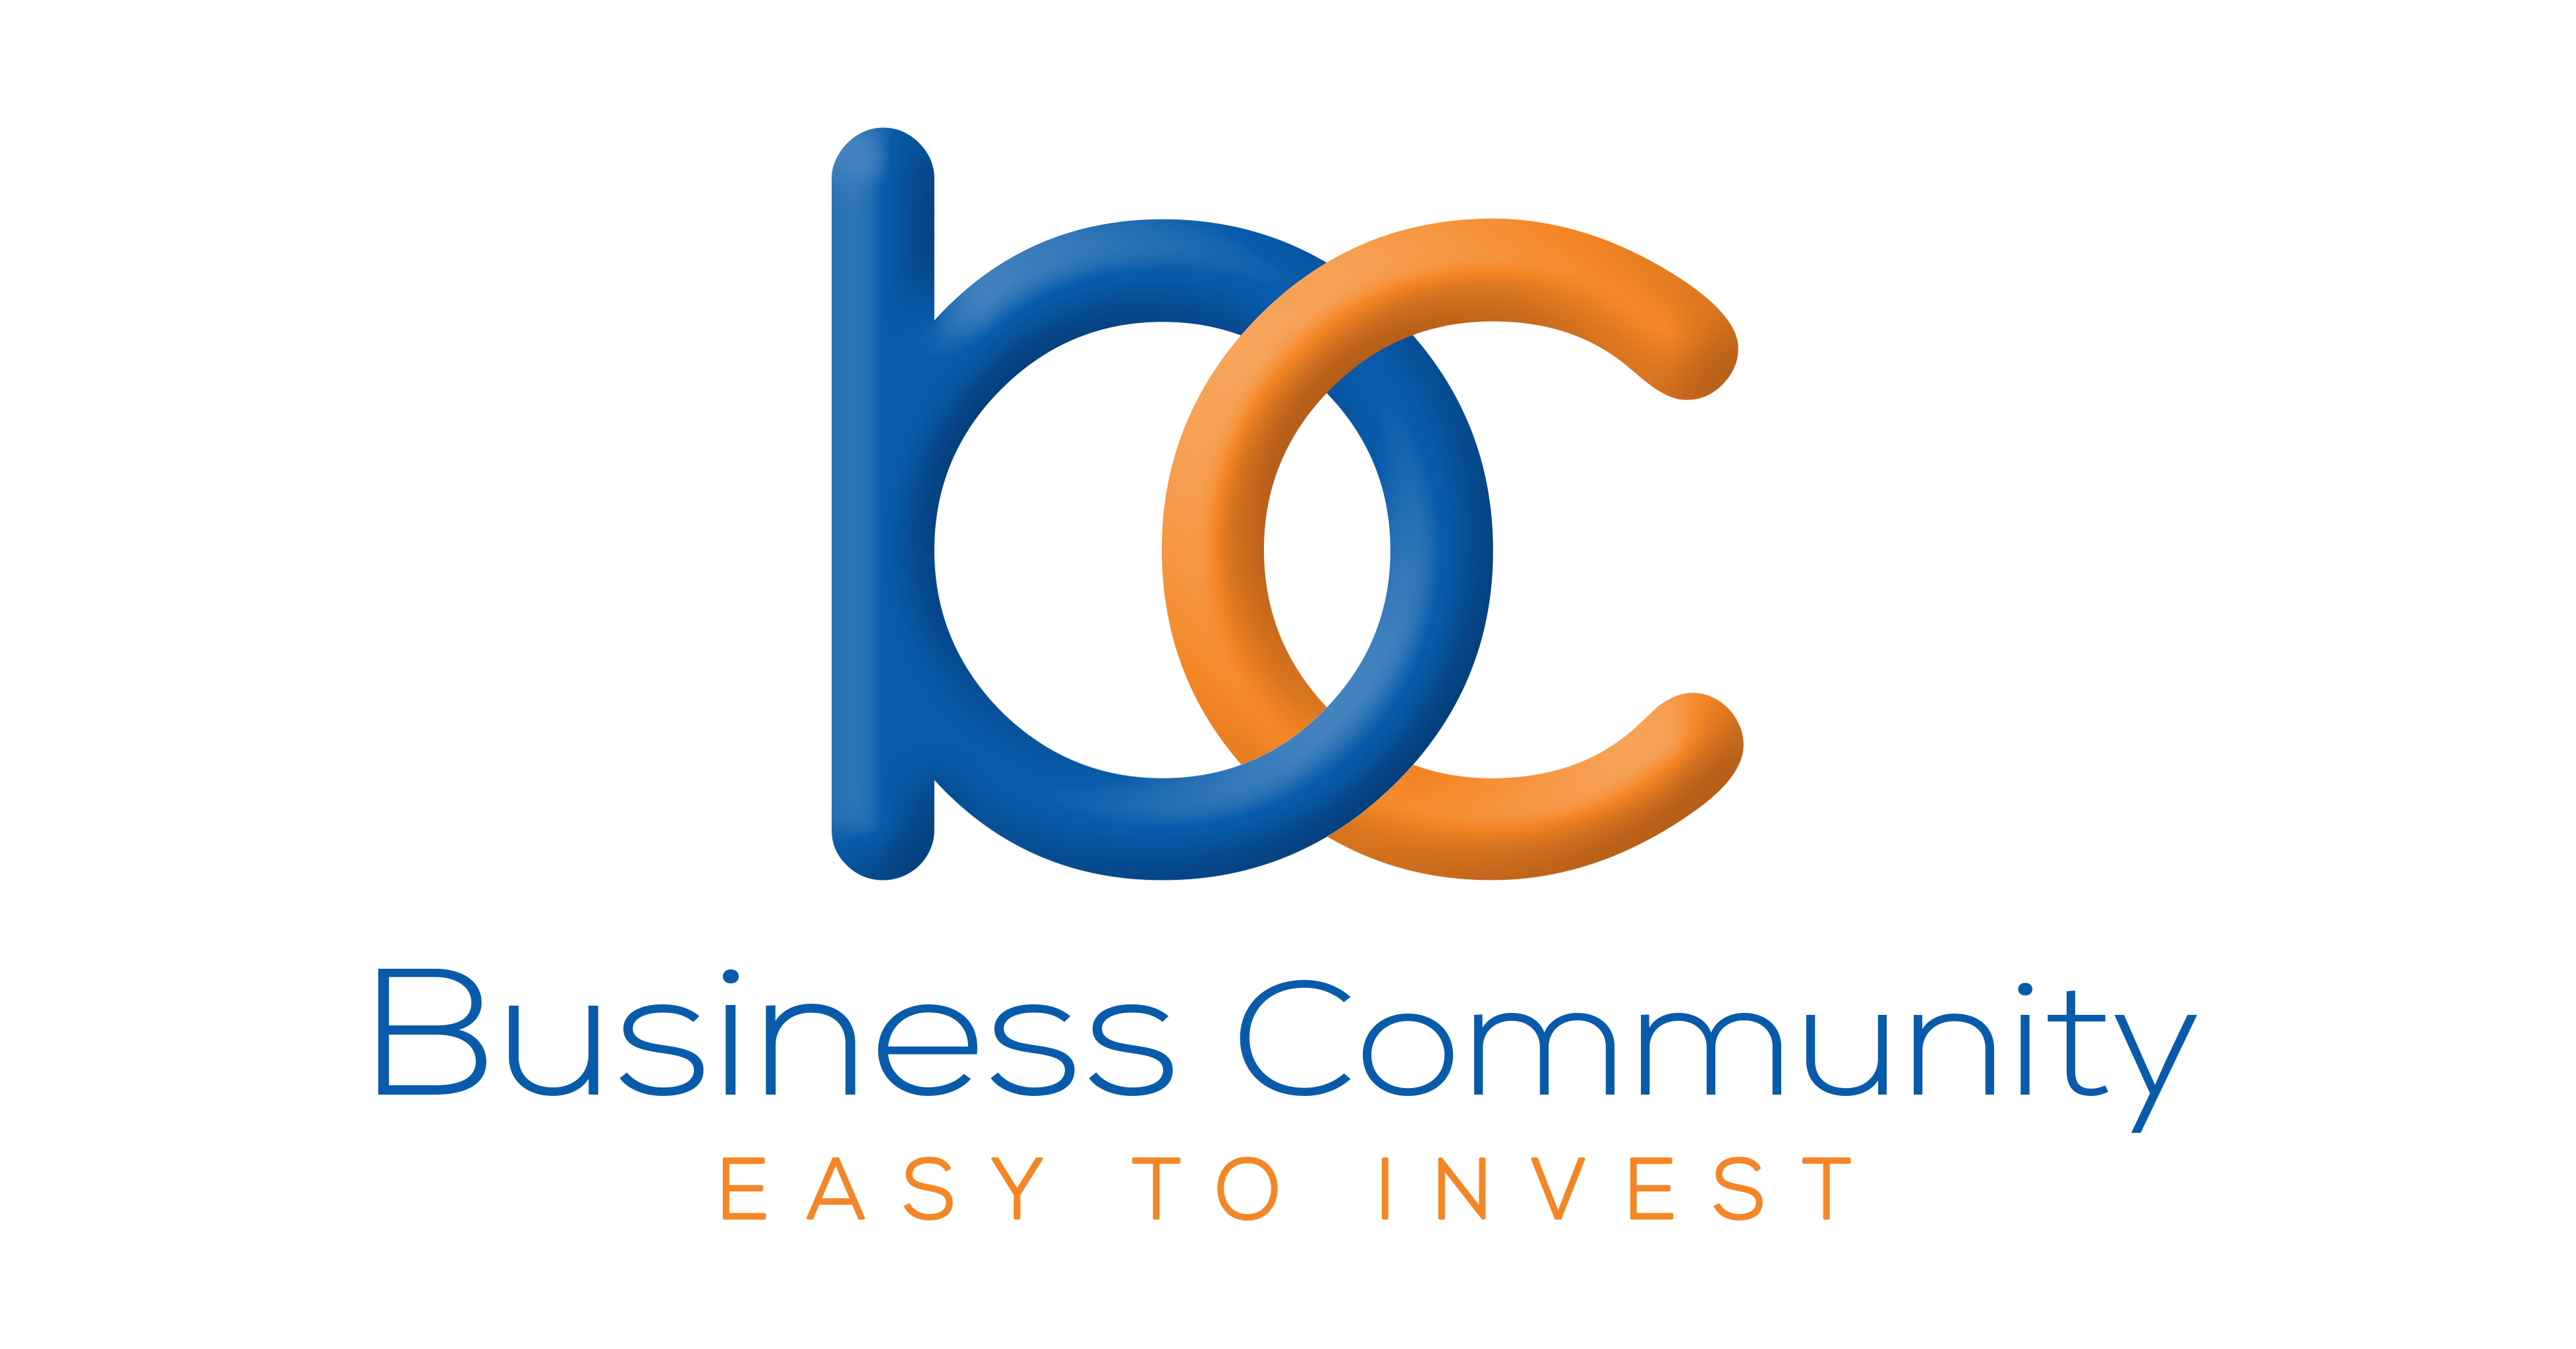 Job: Personal Assistant at Business Community in Cairo, Egypt